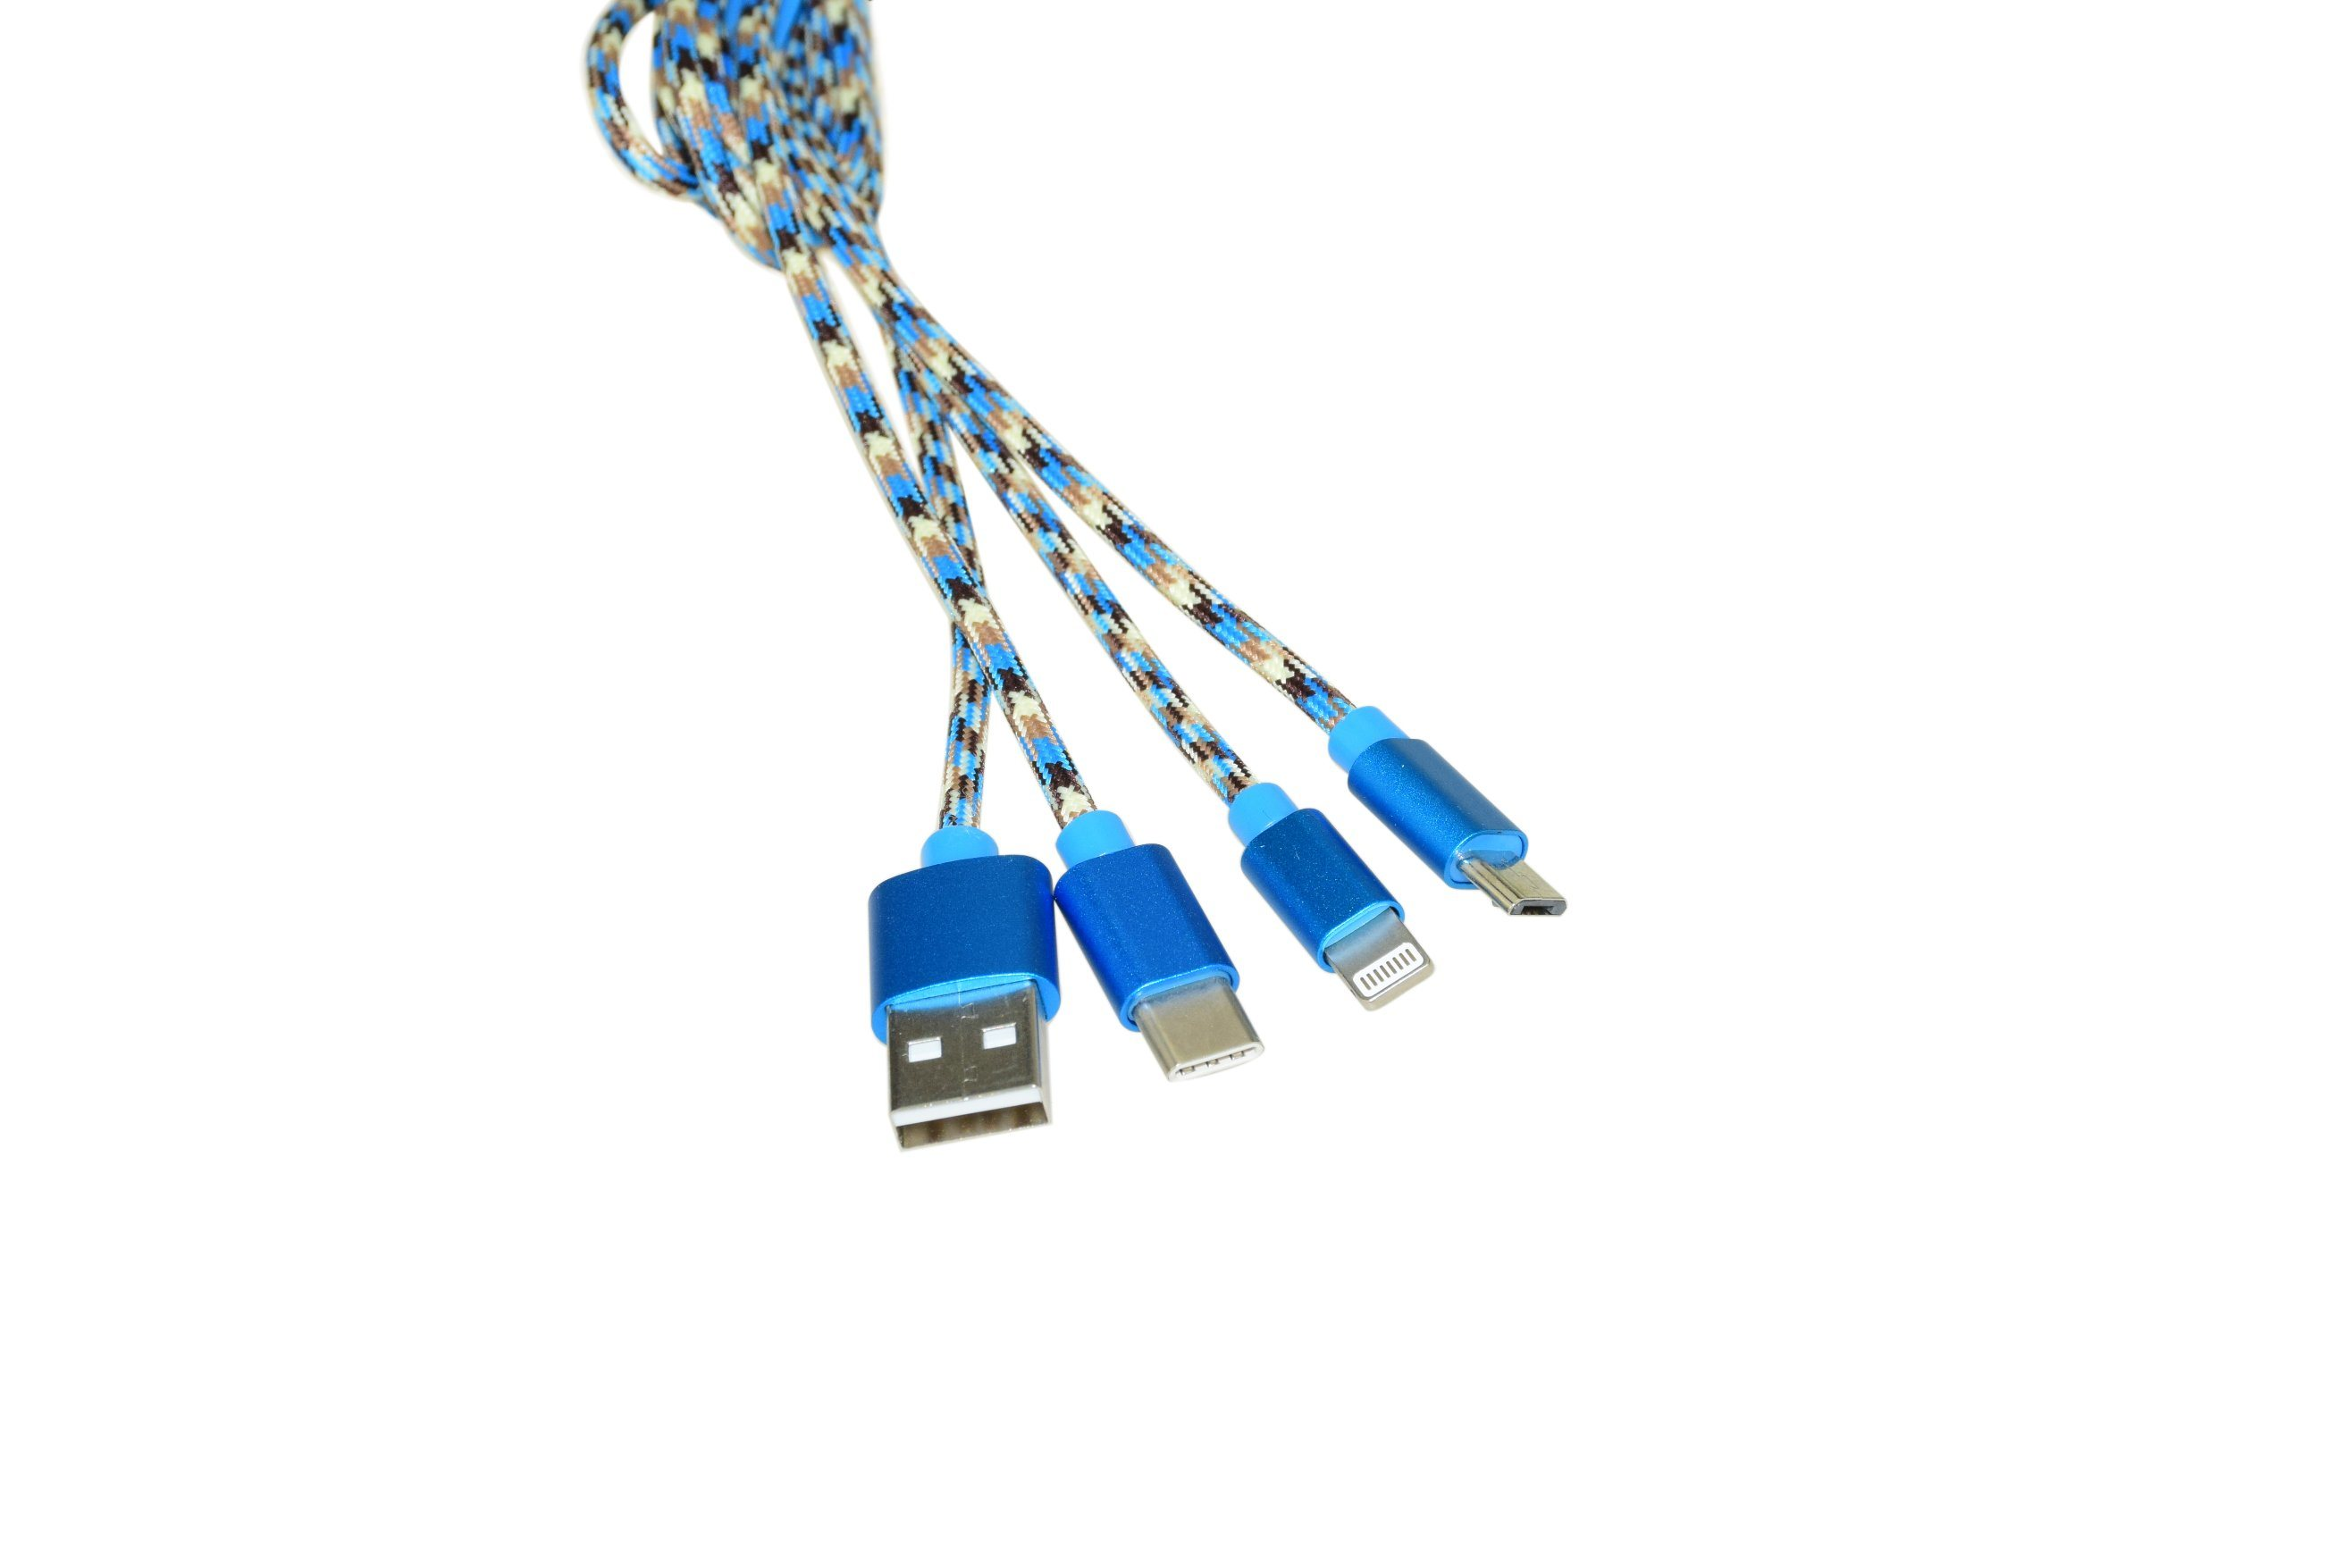 Micro USB Cables for Samsung Mobile Phone Charging Cable pictures & photos